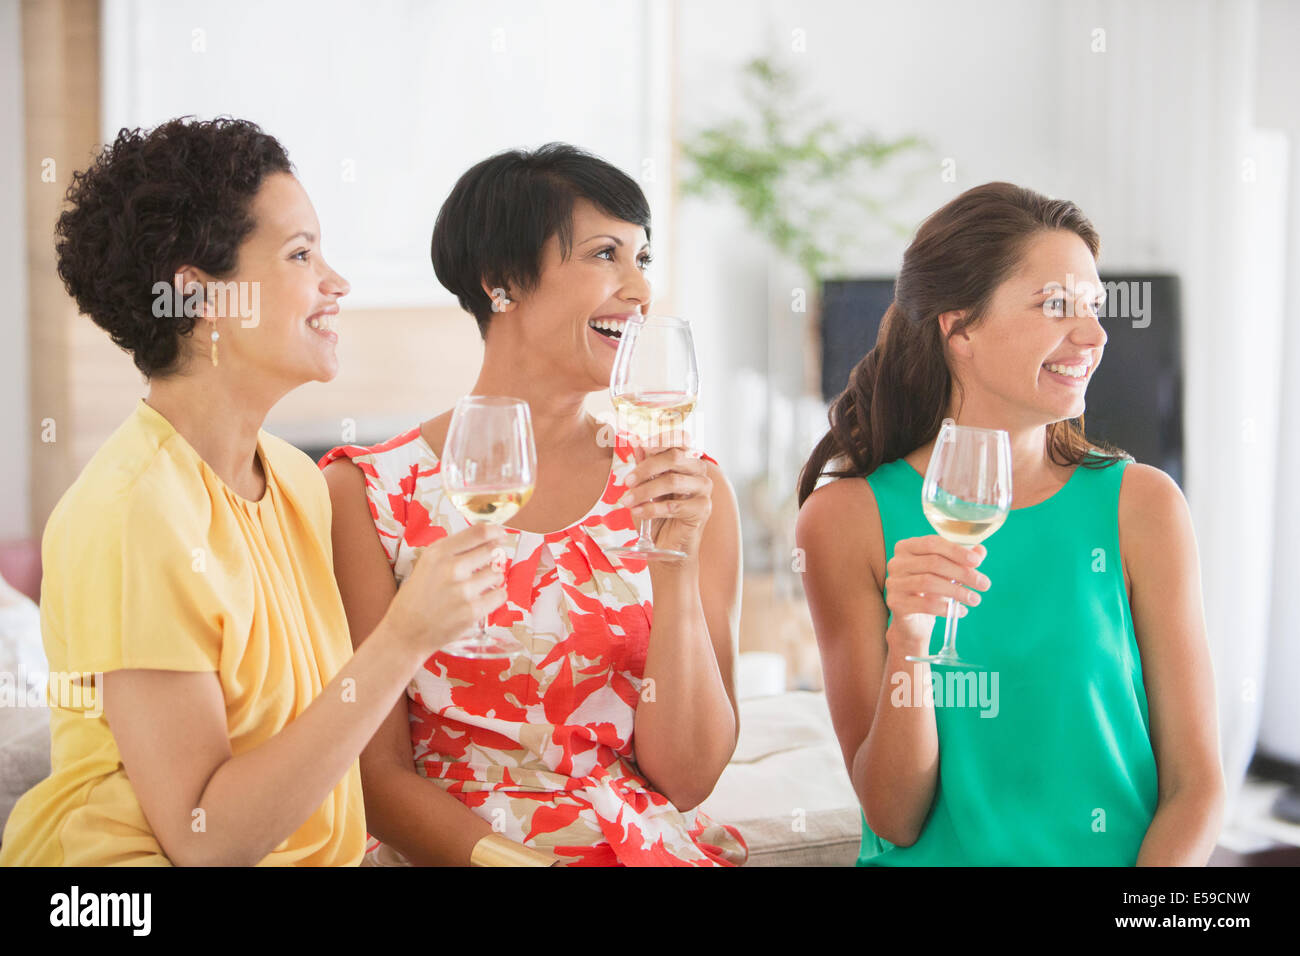 Women drinking wine together - Stock Image